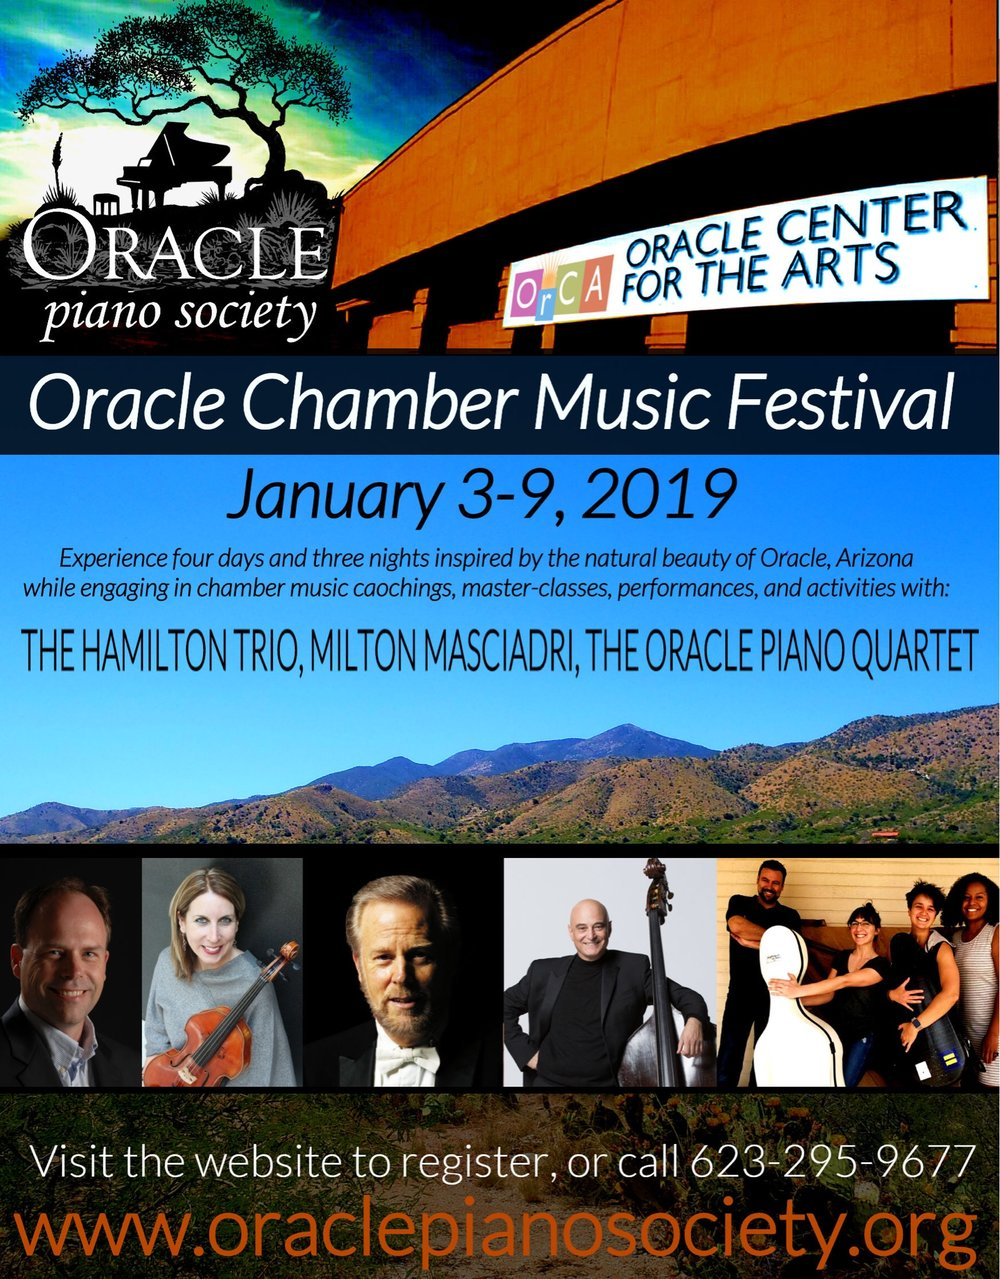 Arizona - Kate is excited to be part of the inaugural Oracle Chamber Music Festival sponsored by the Oracle Piano SocietyHigh school and university students from major music schools in the US are enrolled!